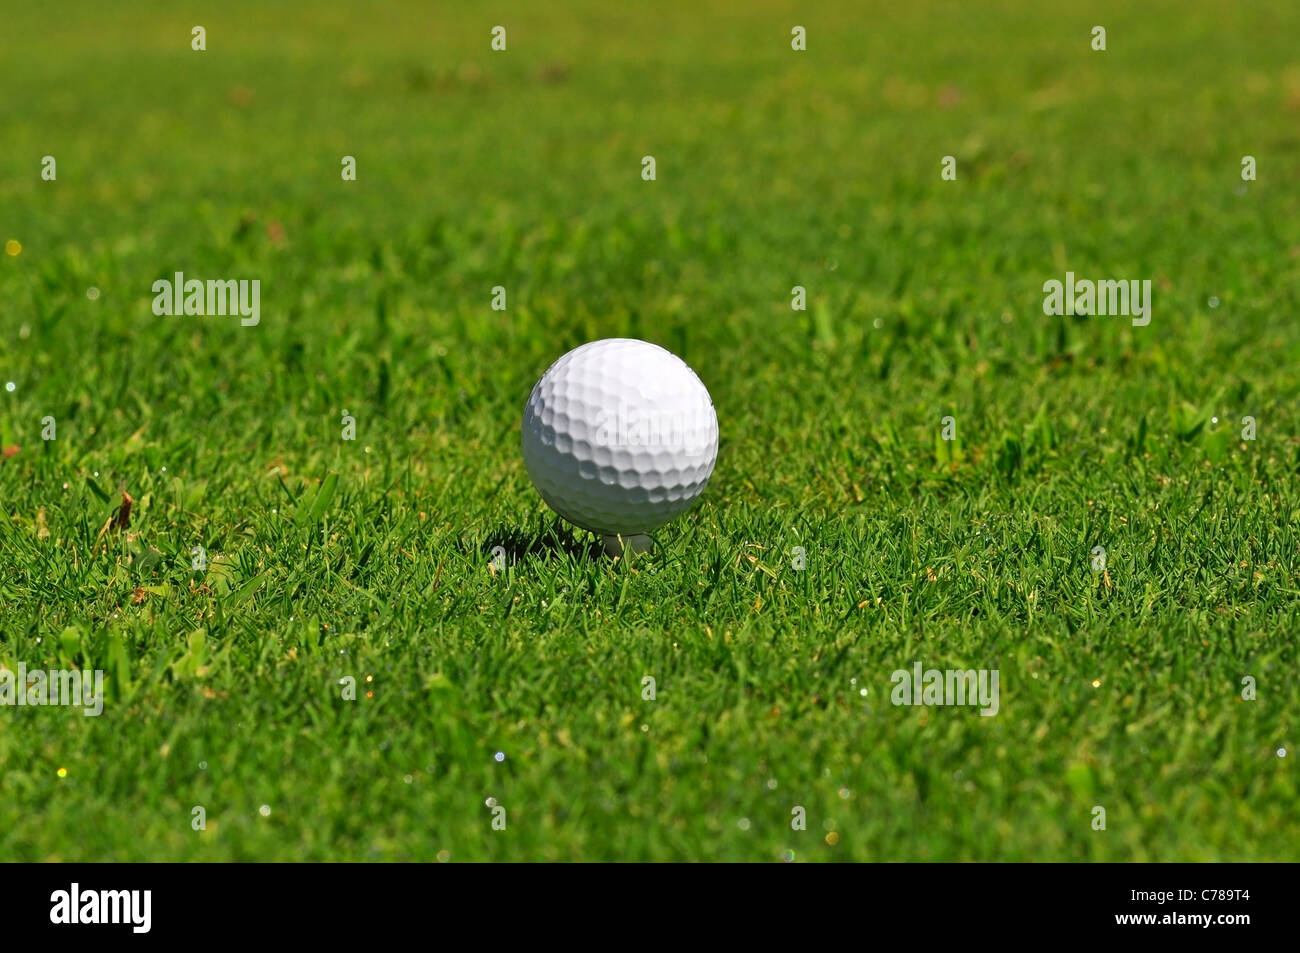 Golf ball on a real golf course green - Stock Image